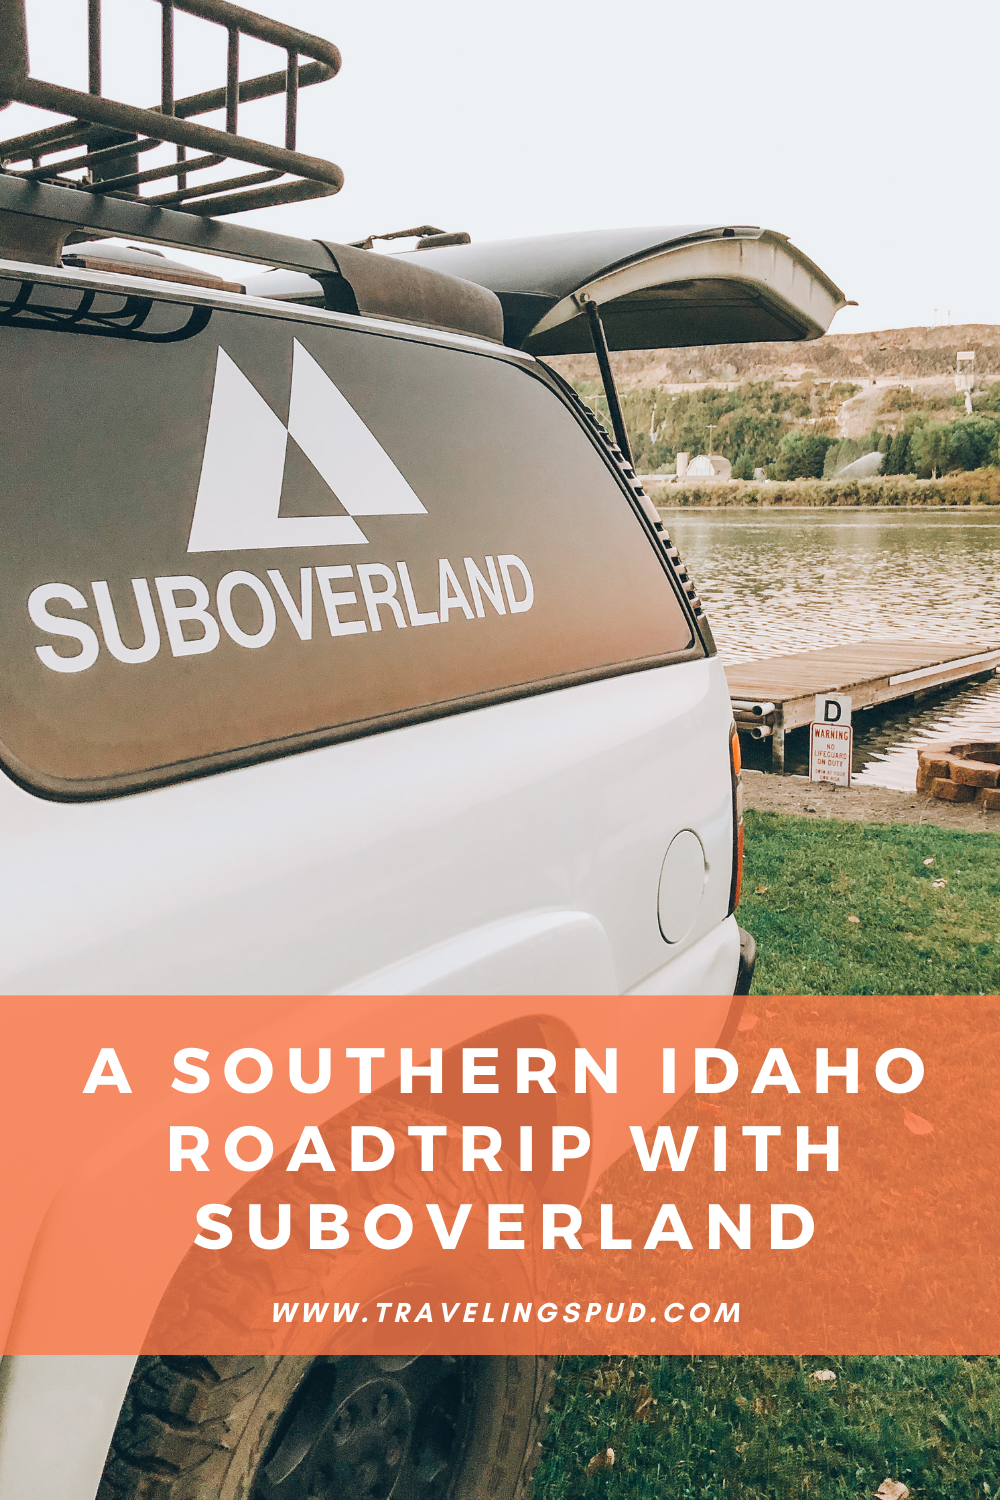 A Southern Idaho Roadtrip with Suboverland